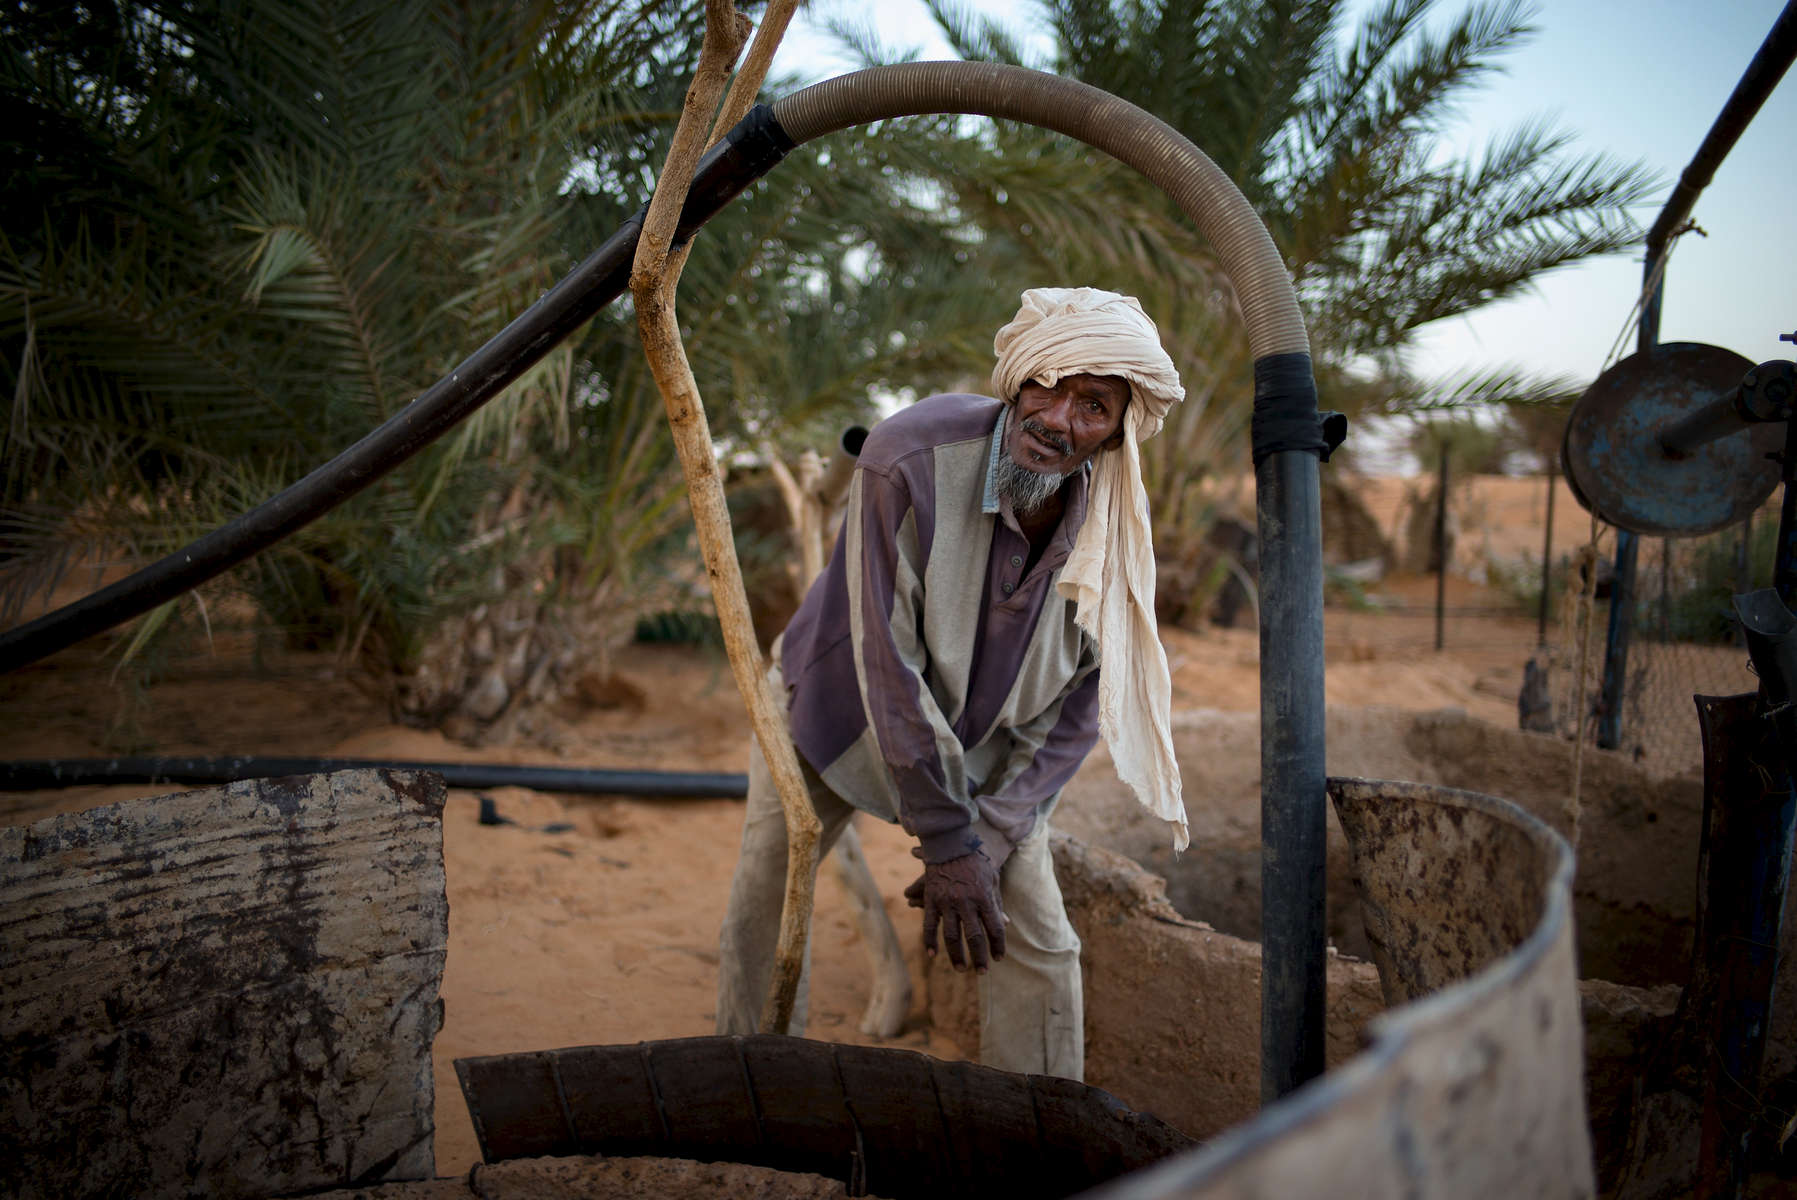 Jeidu fetches water from the well in Lhueeb, nomad camp in outskirts of Chinguetti.